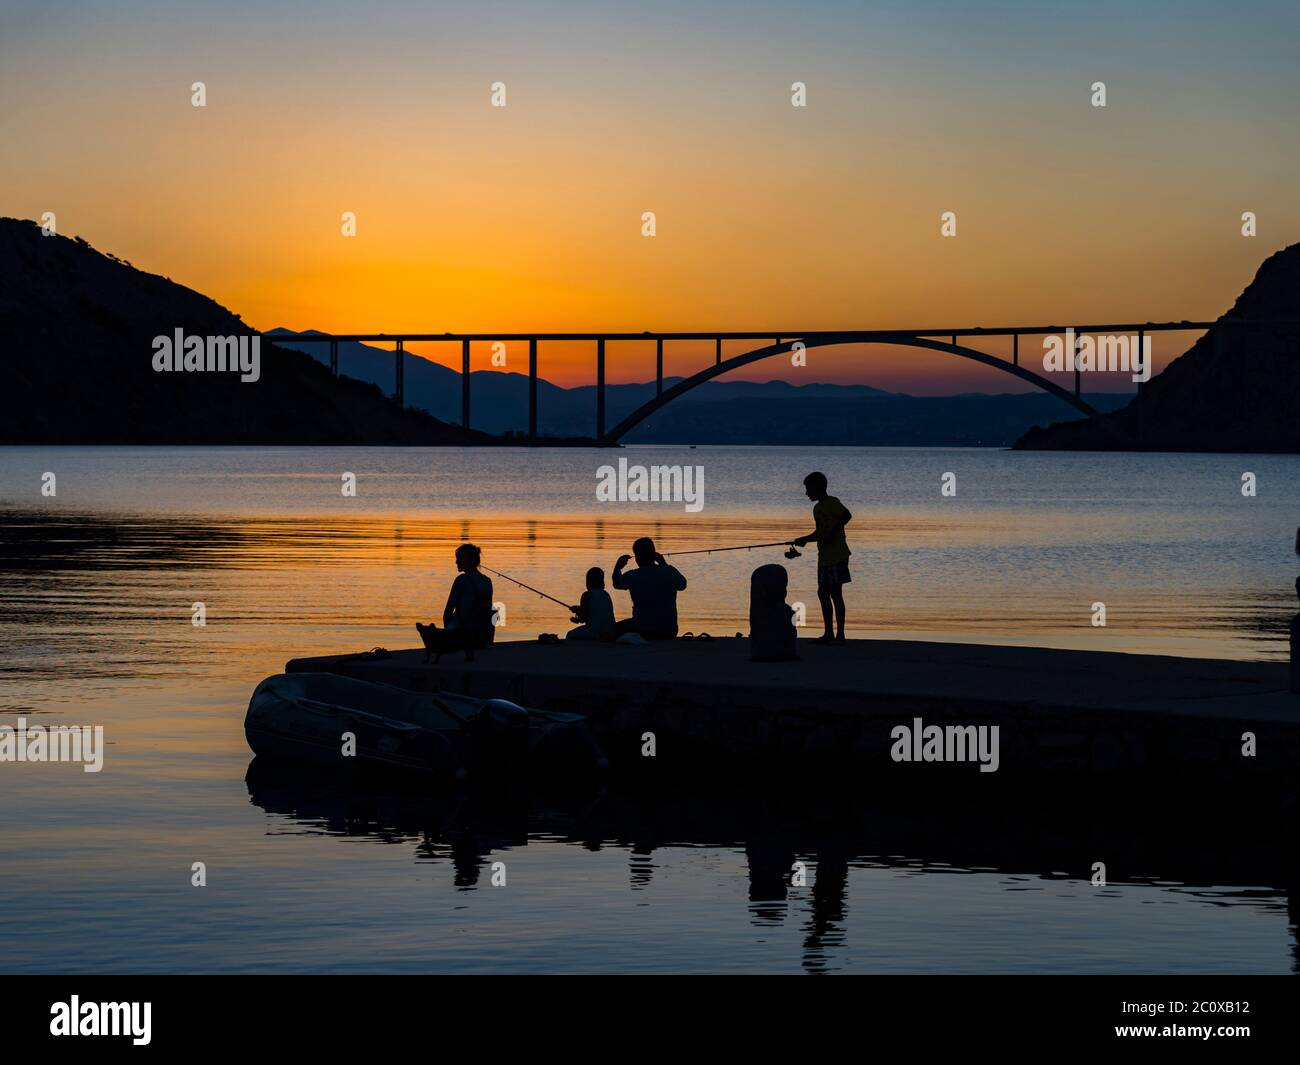 Family together dusk evening free time fishing bridge mainland to island Krk in background silhouettes silhouetting silhouette Stock Photo